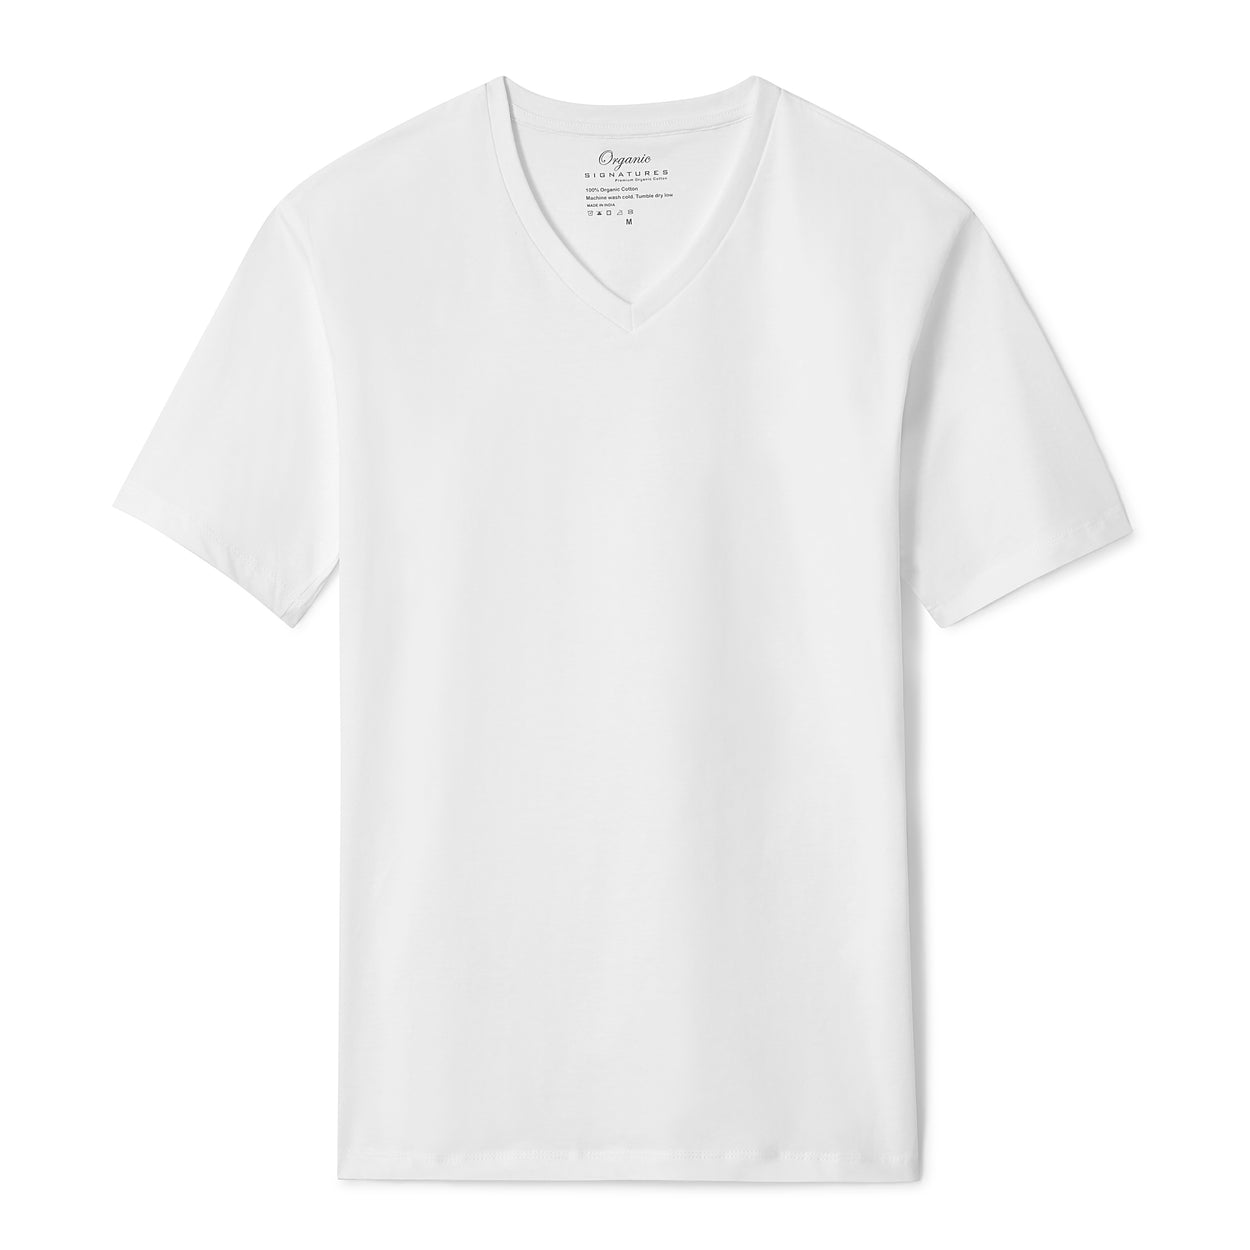 White Organic Signatures T Shirt for Men, V Neck, Short Sleeve